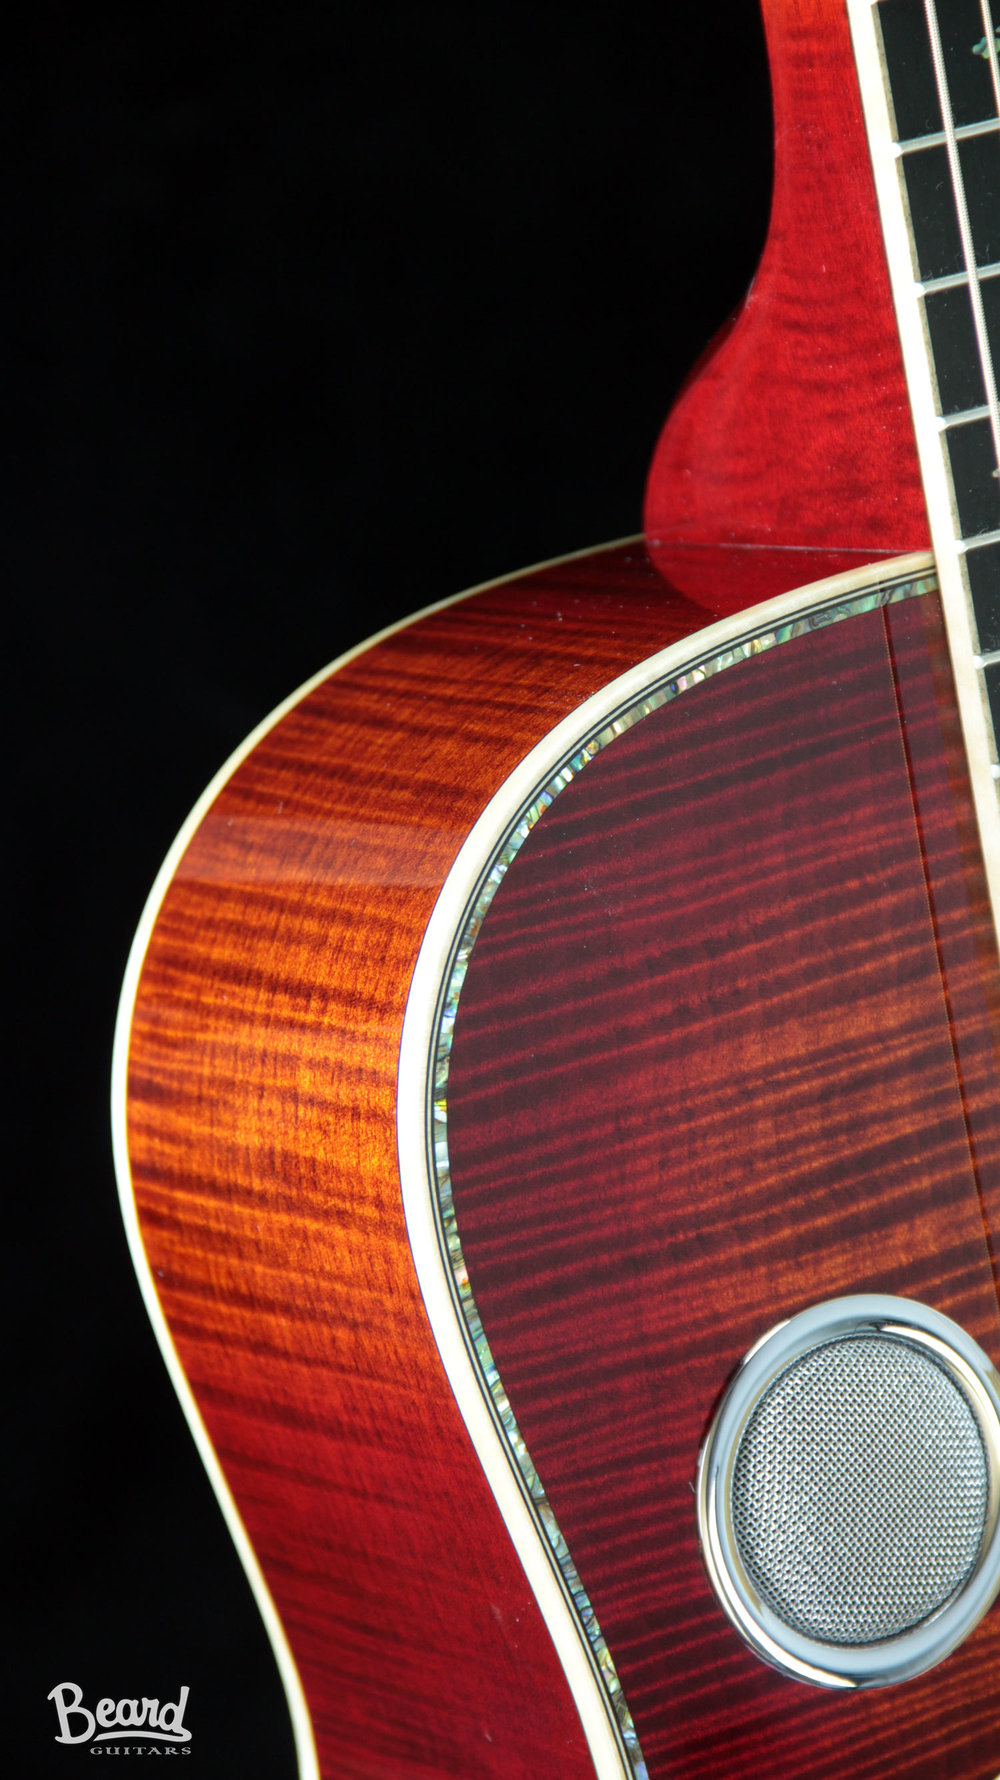 E-Model-Maple-Cherry-Fire-Burst-inlay-with-hiphsot-det-1.jpg